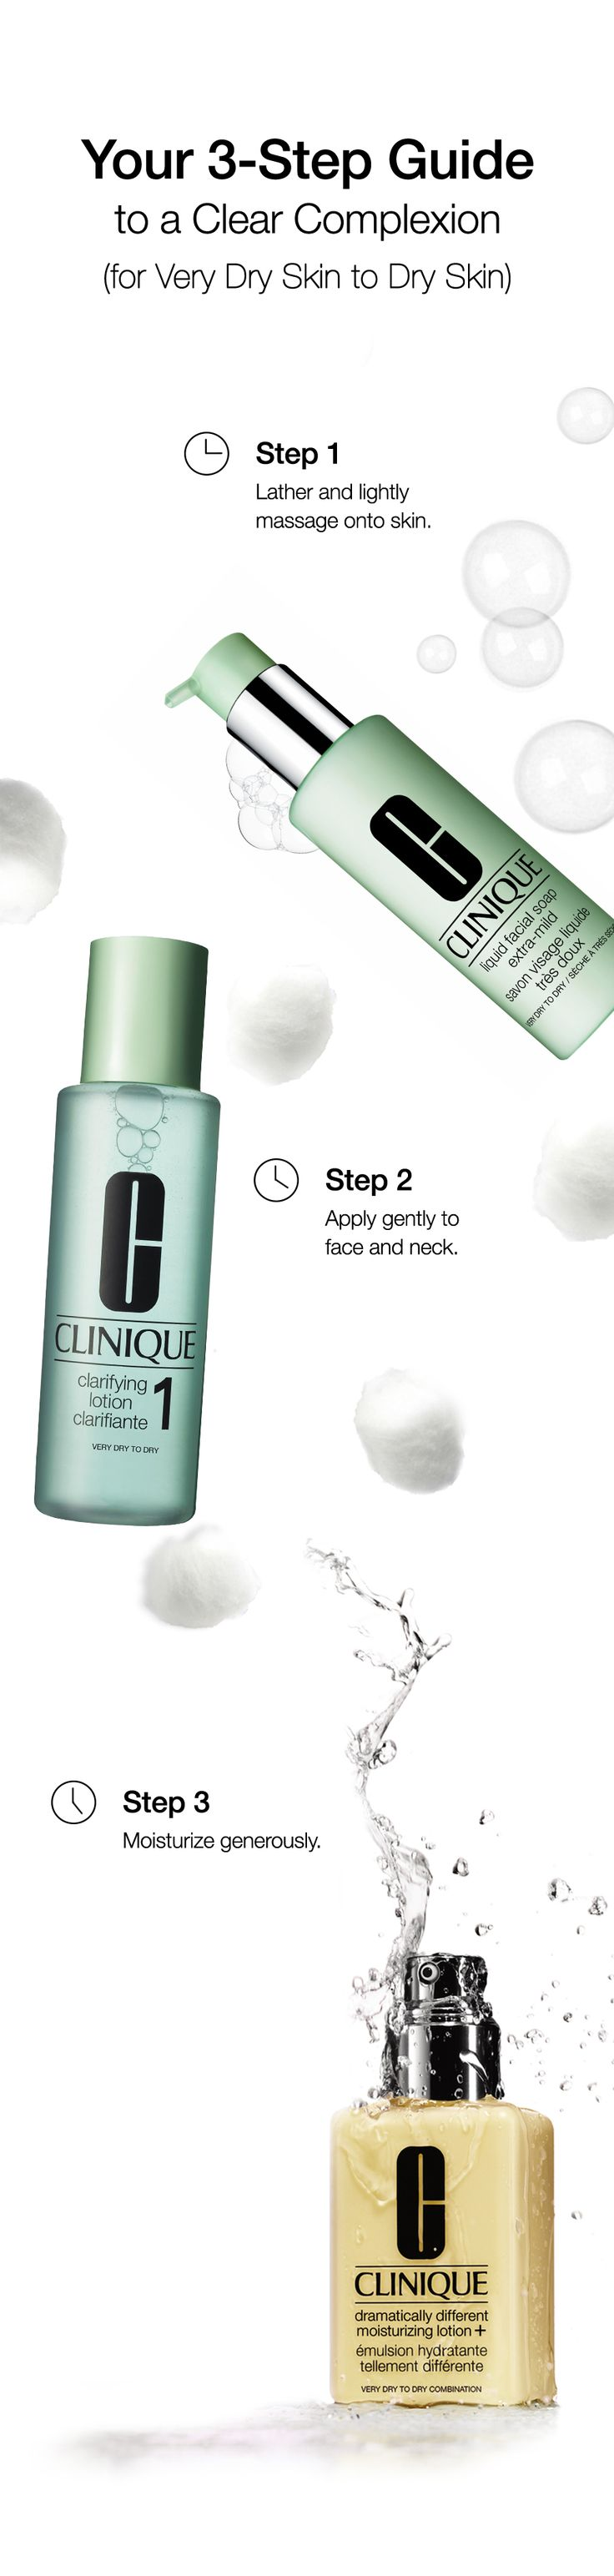 Follow these 3 easy steps to cleanse and replenish skin that feels tight and uncomfortable all over.